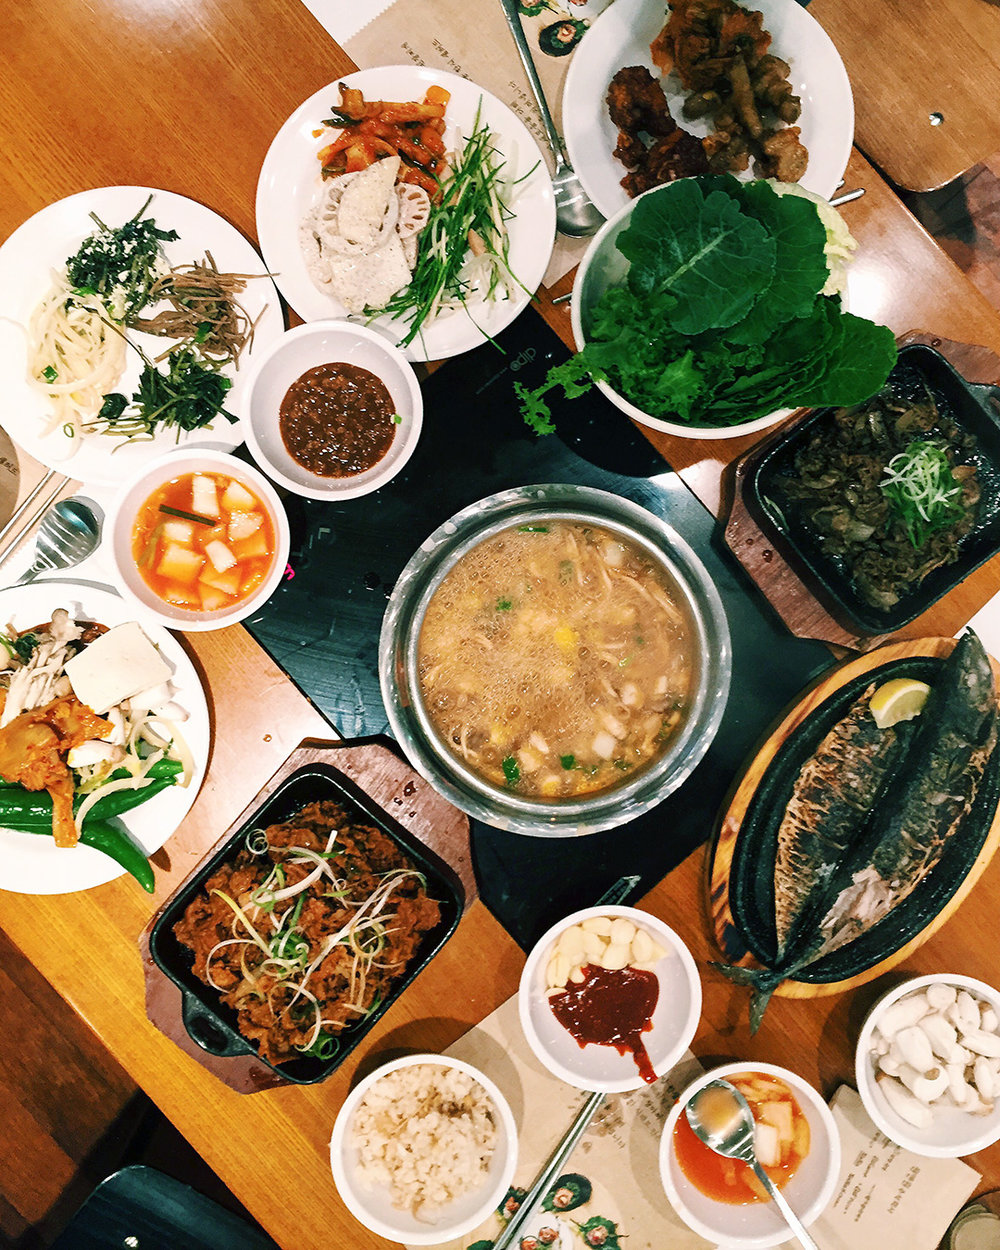 Won Halmuni Bossam - Gungang Ssambap (원할머니 보쌈 건강쌈밥)  Dish: Doenjang jjigae, Bulgogi, Fried mackerel, Vegetable Ssam, Banchan, etc. Address: 1685 Won Halmuni 3rd Floor, Hwang hak-dong, Joong-gu, Seoul 종구 황학동 1685 번지 원할머니 본가 3층층  Website